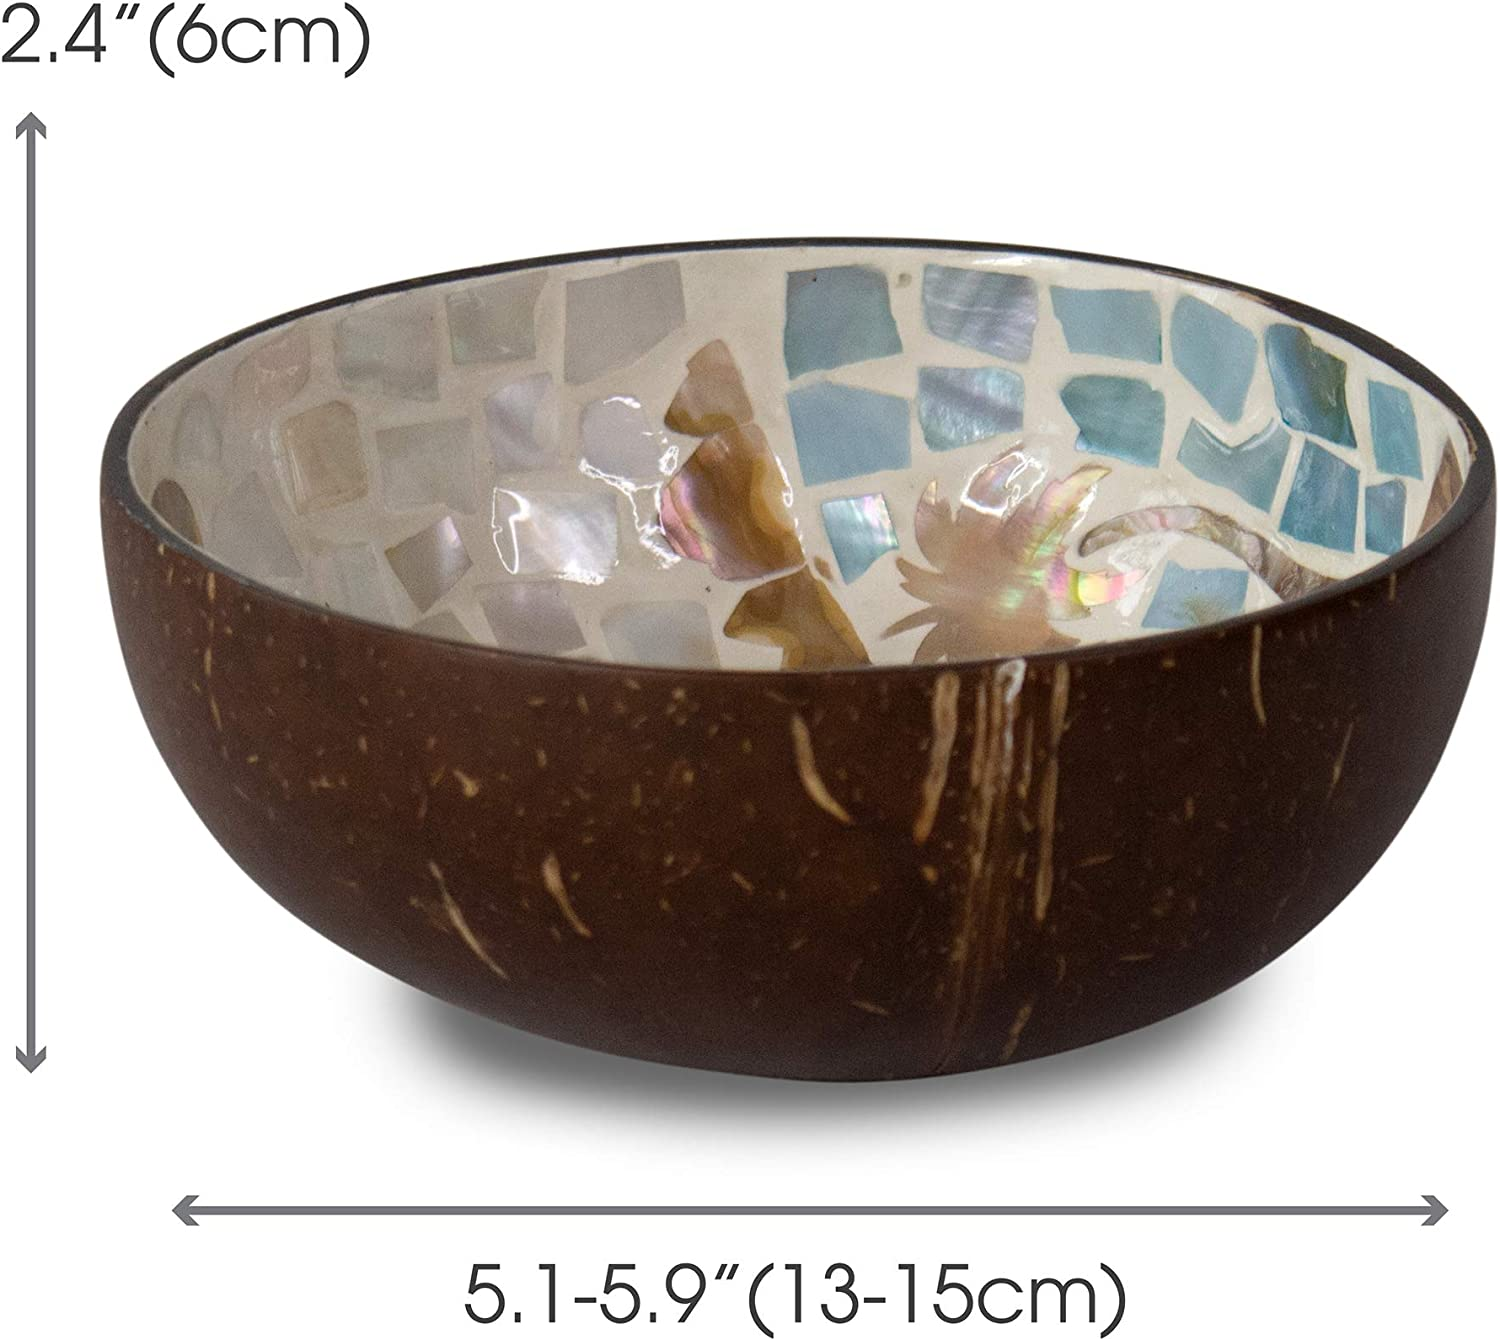 Made Terra Mother of Pearl Inlay Coconut Bowls and Wooden Spoons Set 2 Nacre Dots Dining and Decoration Vegan Organic Salad Cereal Smoothie Buddha Acai Bowl for Kitchen